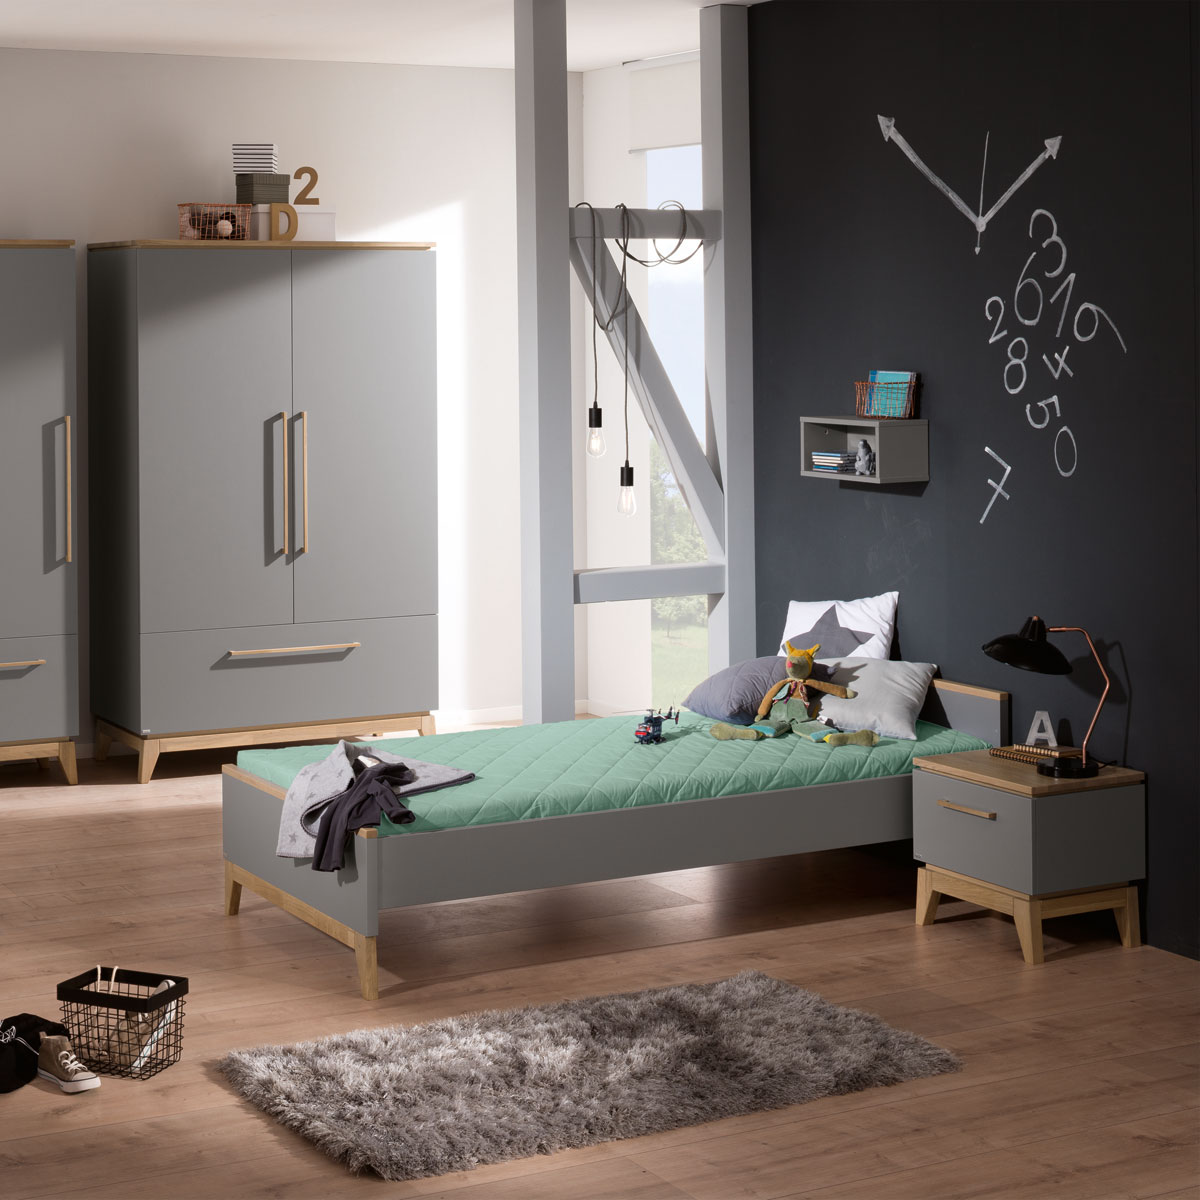 paidi sten jugendzimmer g nstig online bestellen. Black Bedroom Furniture Sets. Home Design Ideas